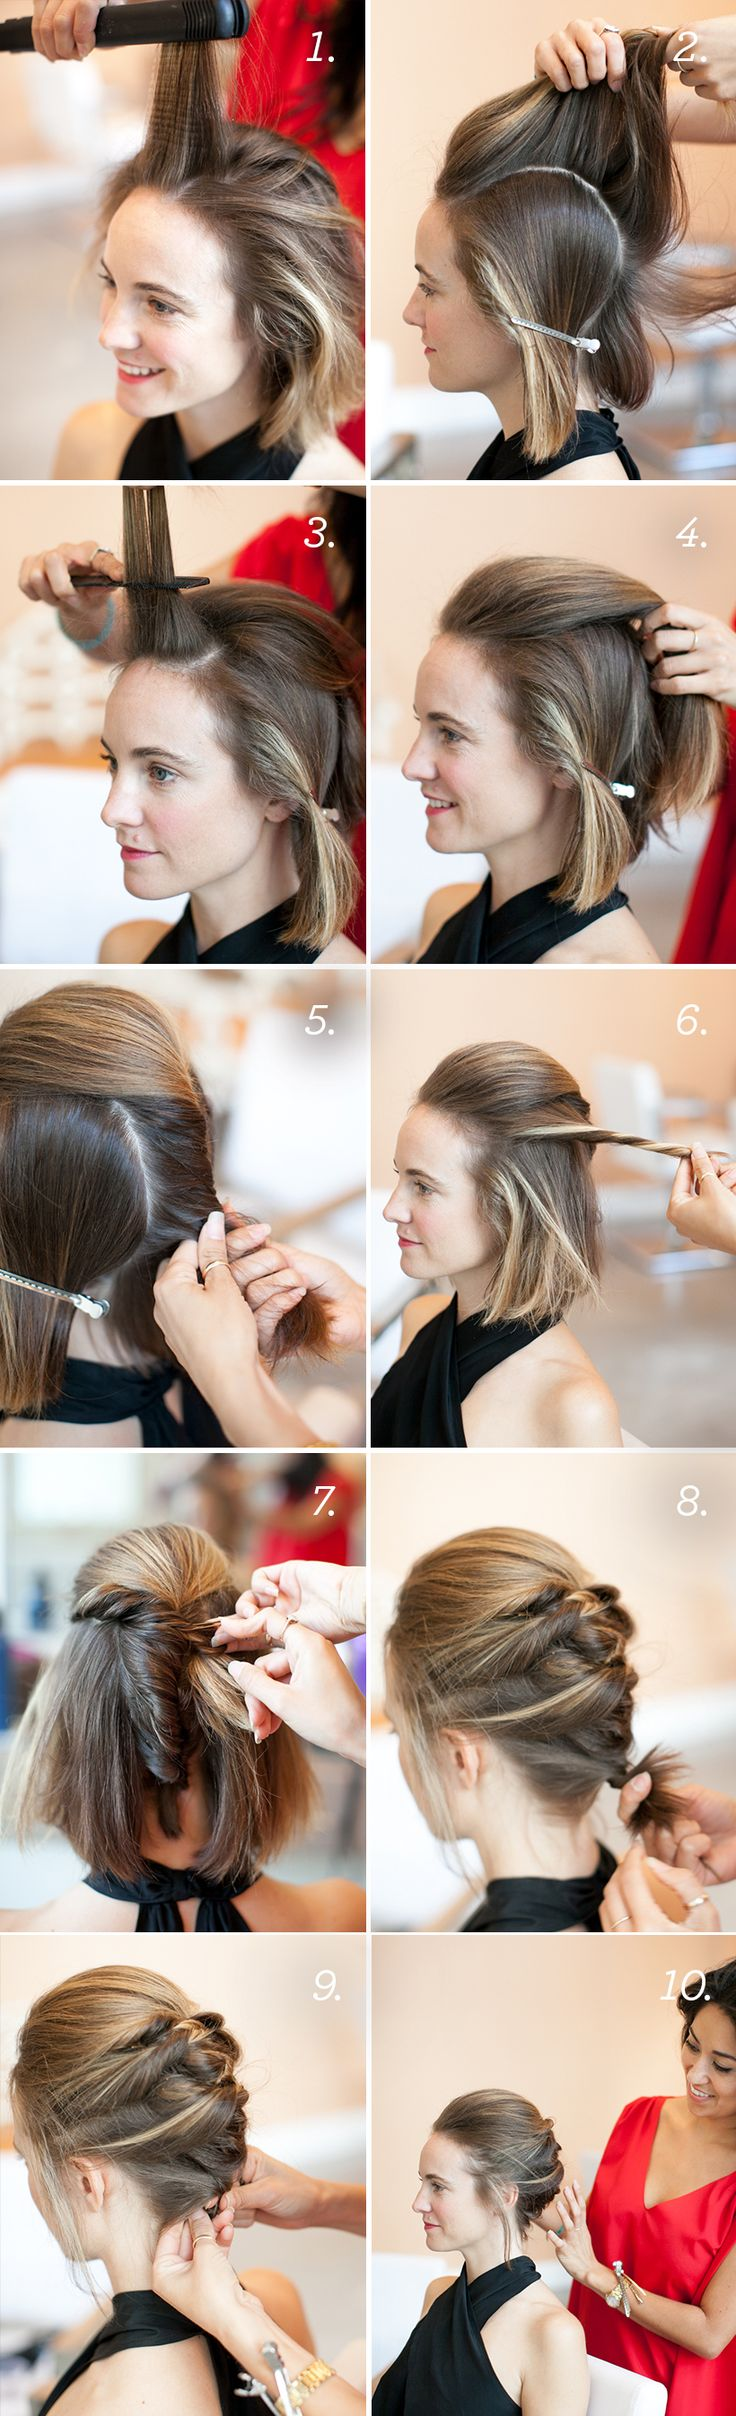 Sophisticated DIY Textured French Twist For Short Hair #hairstyles #ShortHair